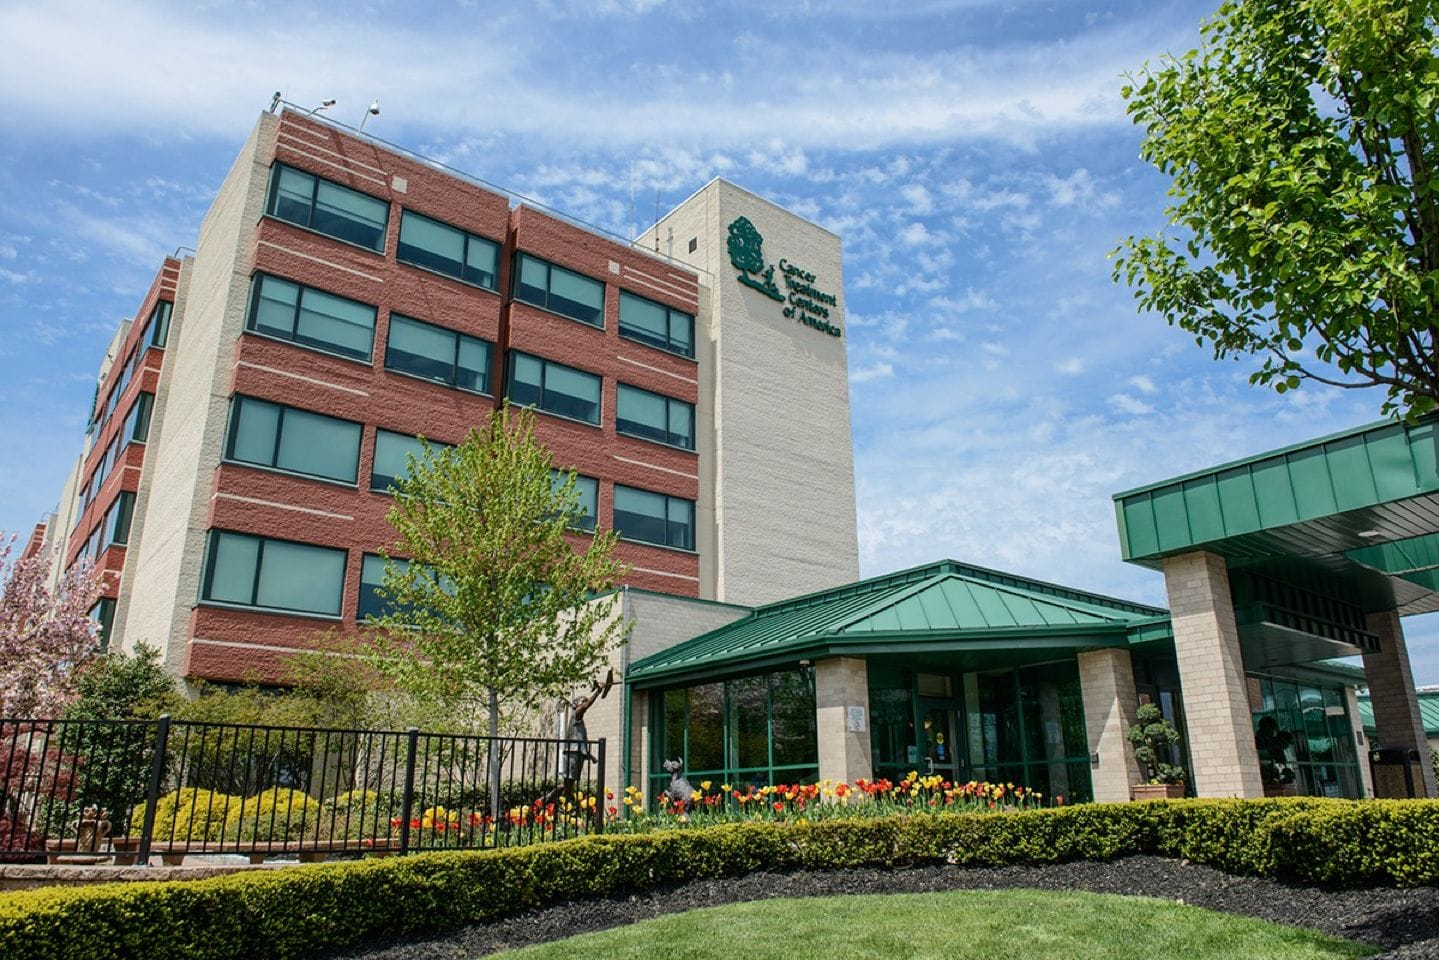 CTCA Eastern Regional Medical Center in Philadelphia, PA